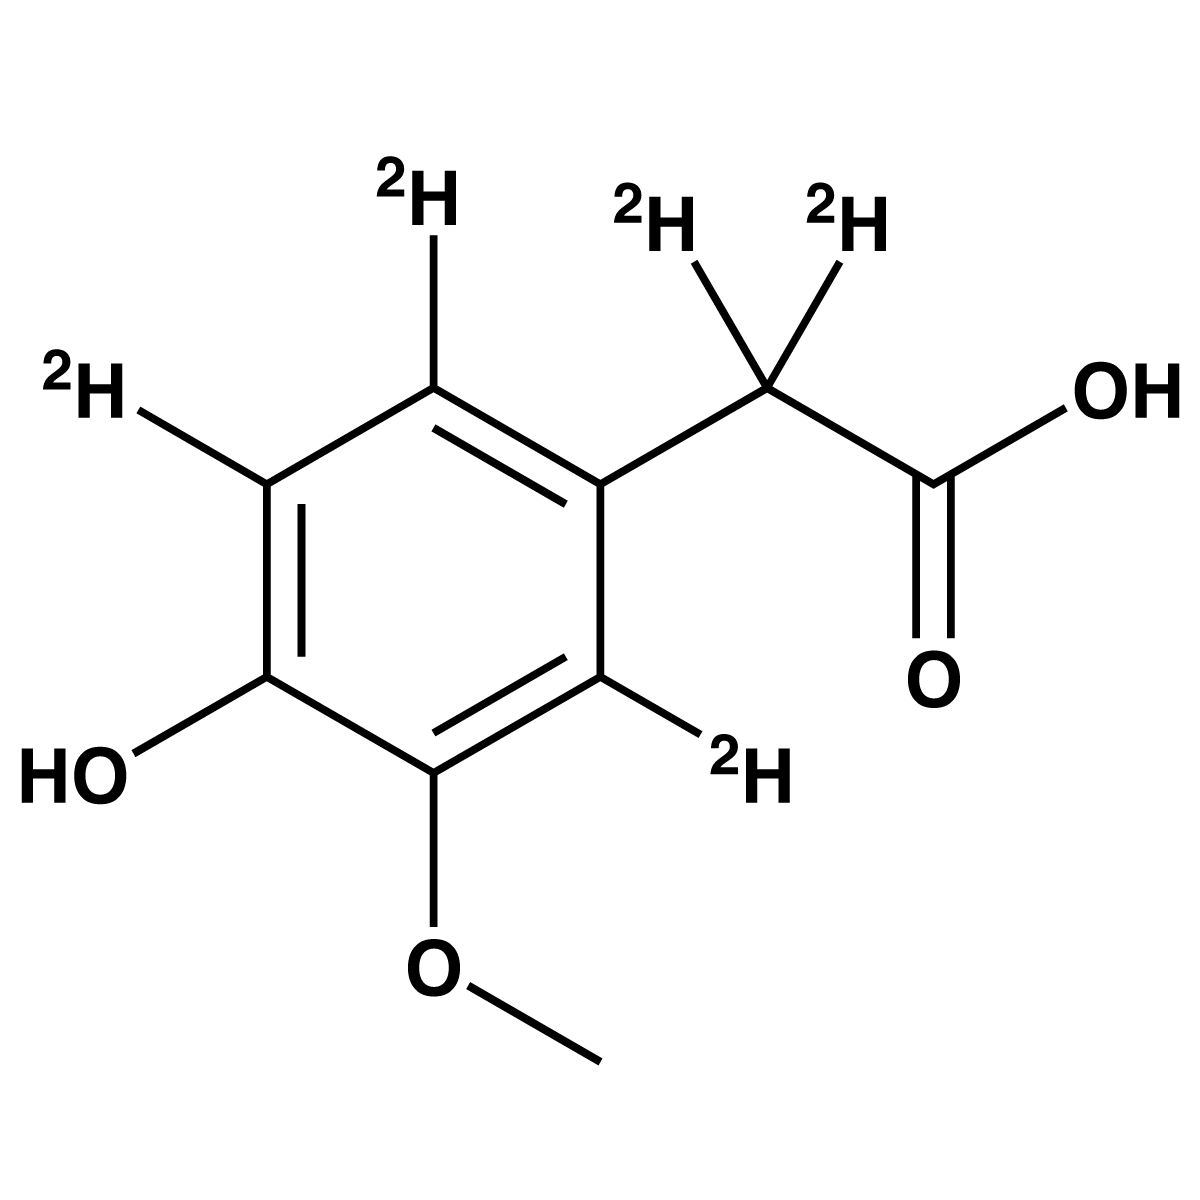 Homovanillic Acid-[d5] (HVA-d5) (Solution) - IsoSciences